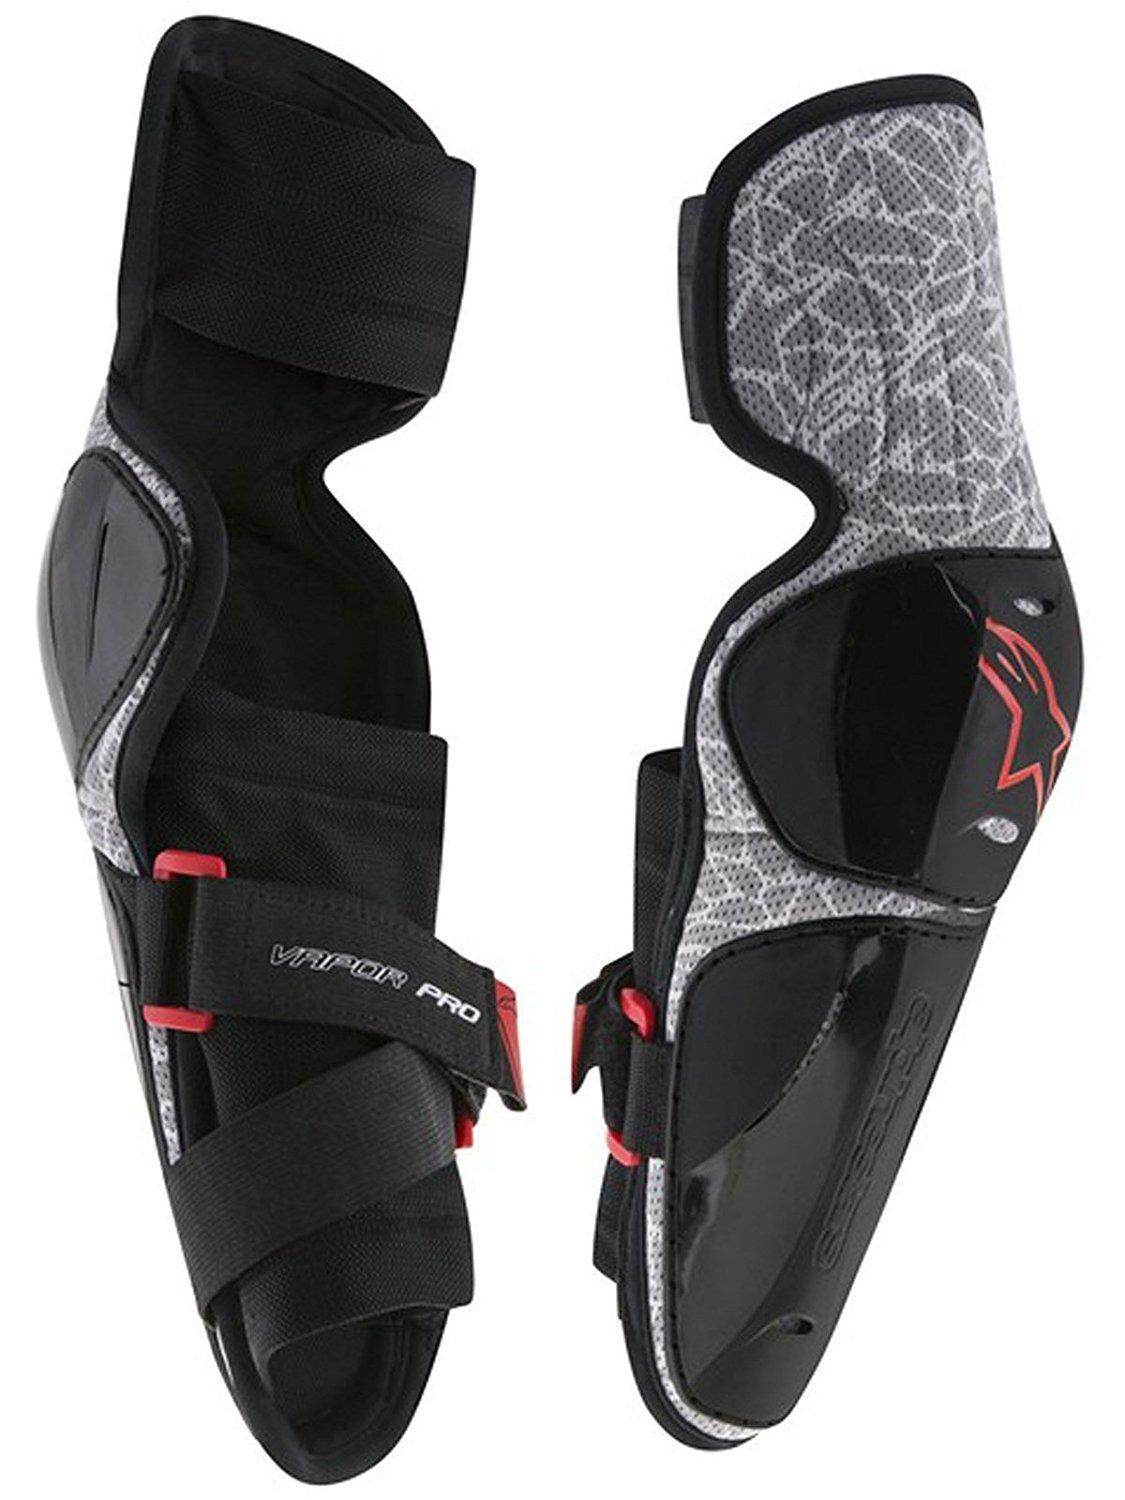 Alpinestars Vapor Pro Elbow Protector Guard, Adult - Large/X-Large - Black Gray